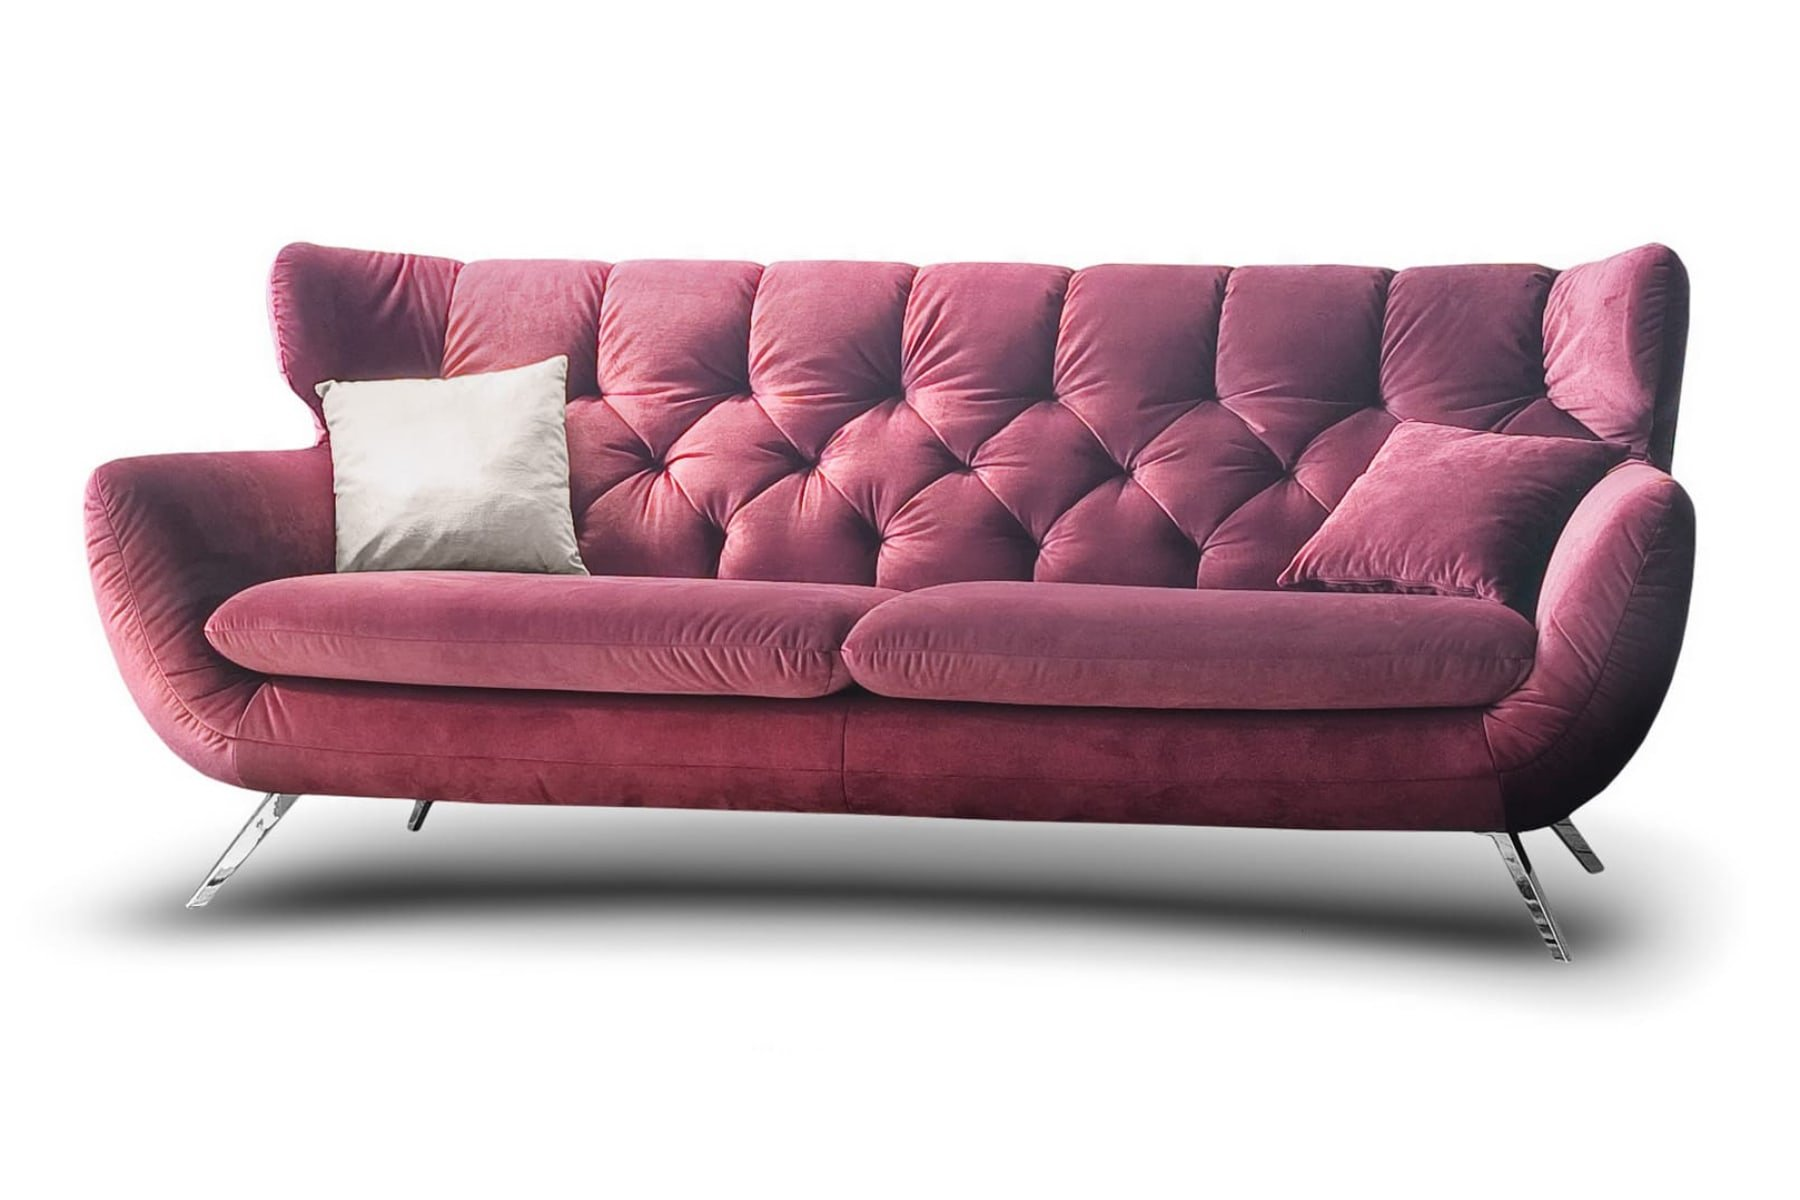 Designer Chesterfield Couch Garnitur 3 2 1 Sofa Set Candy Sixty